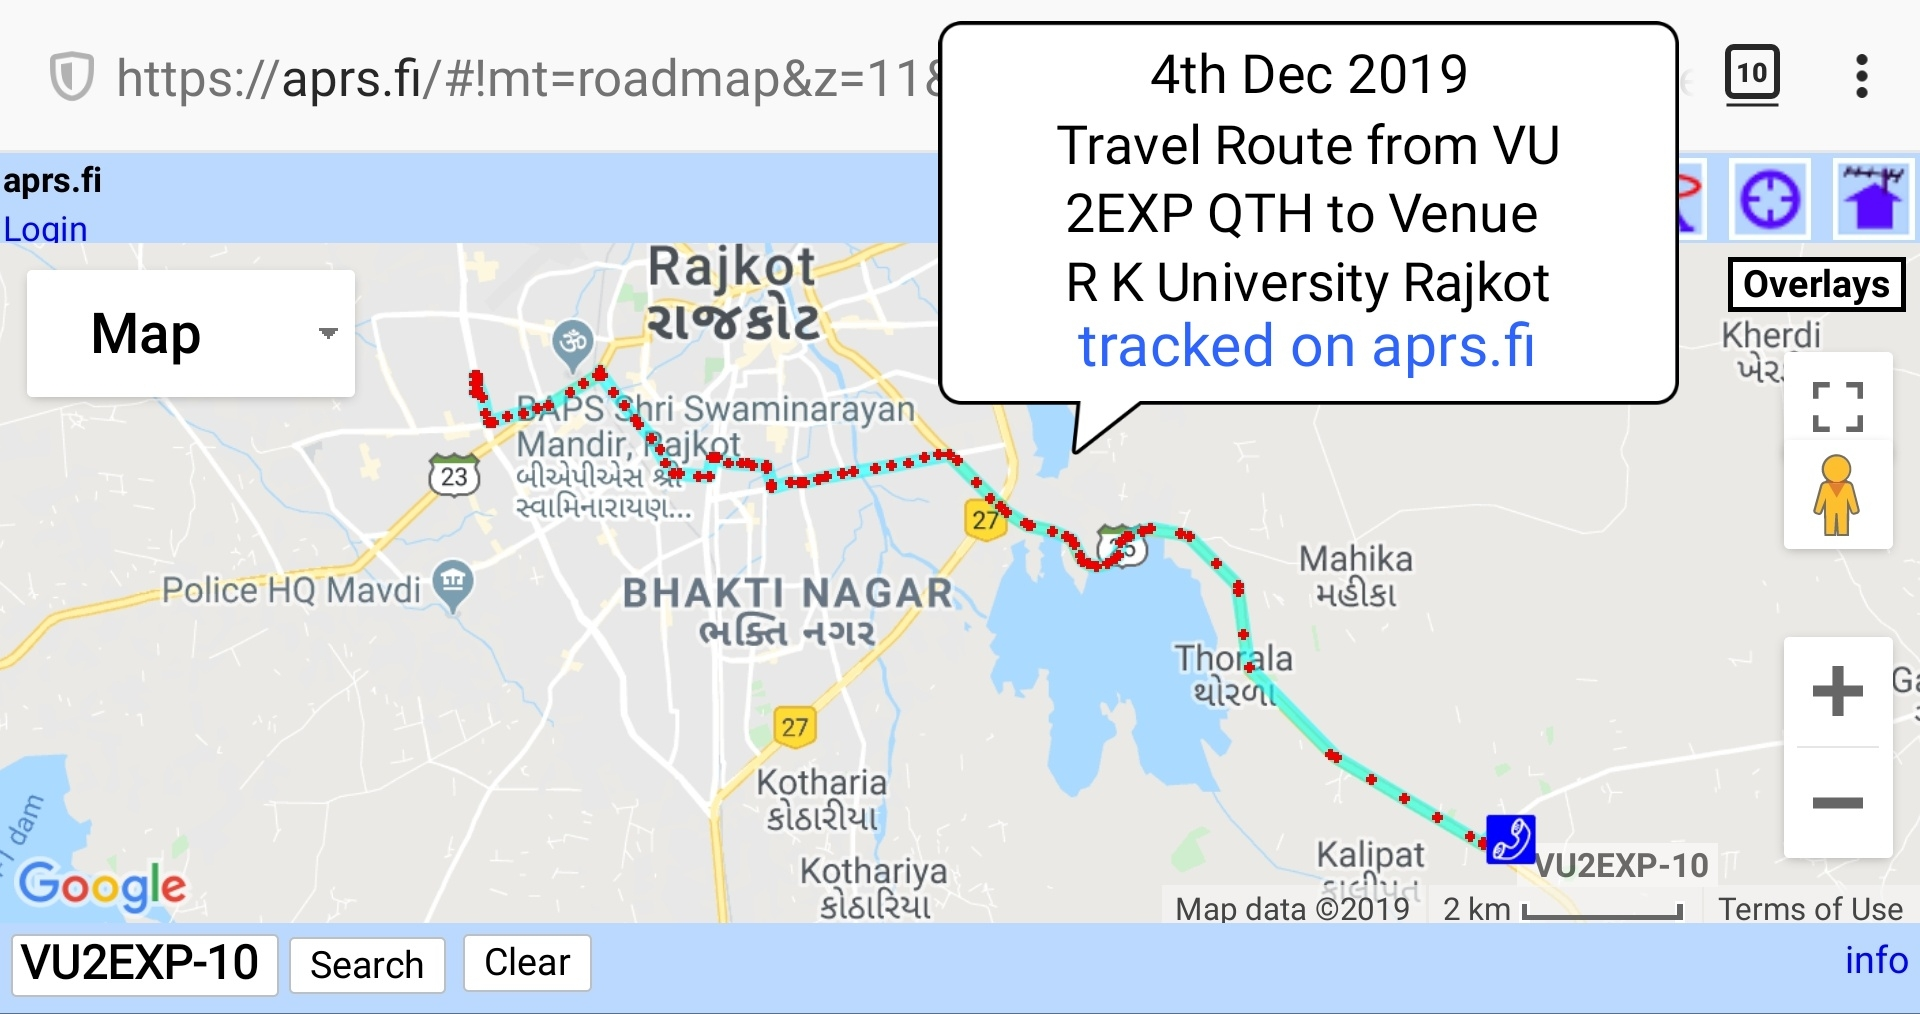 000 Vu2exp travel Route was tracked on aprs.jpg